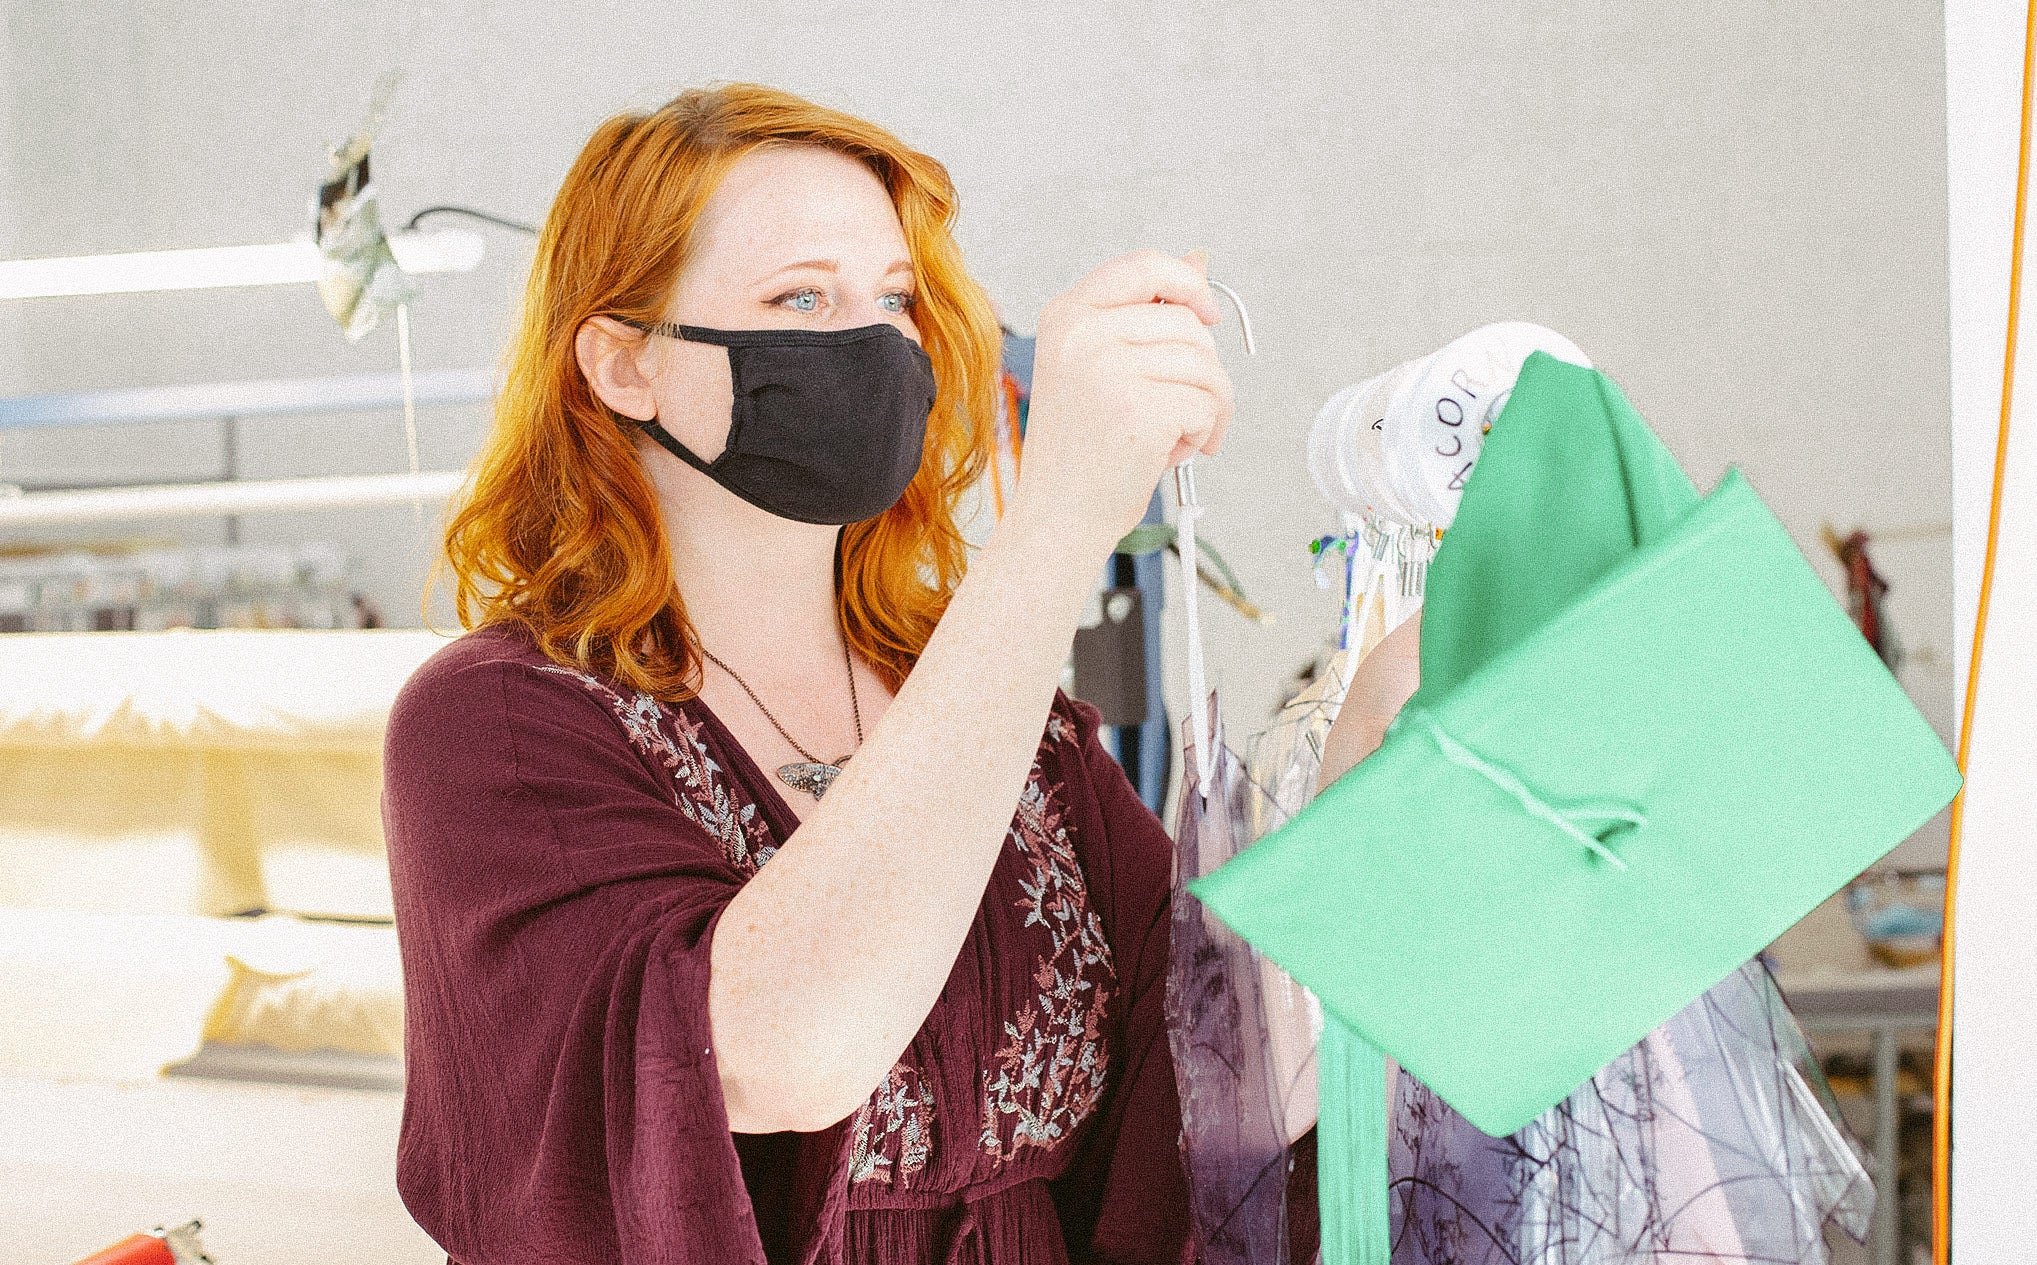 Taylor pulls a pattern from a rack with a green graduation cap hanging on the end of the rack.